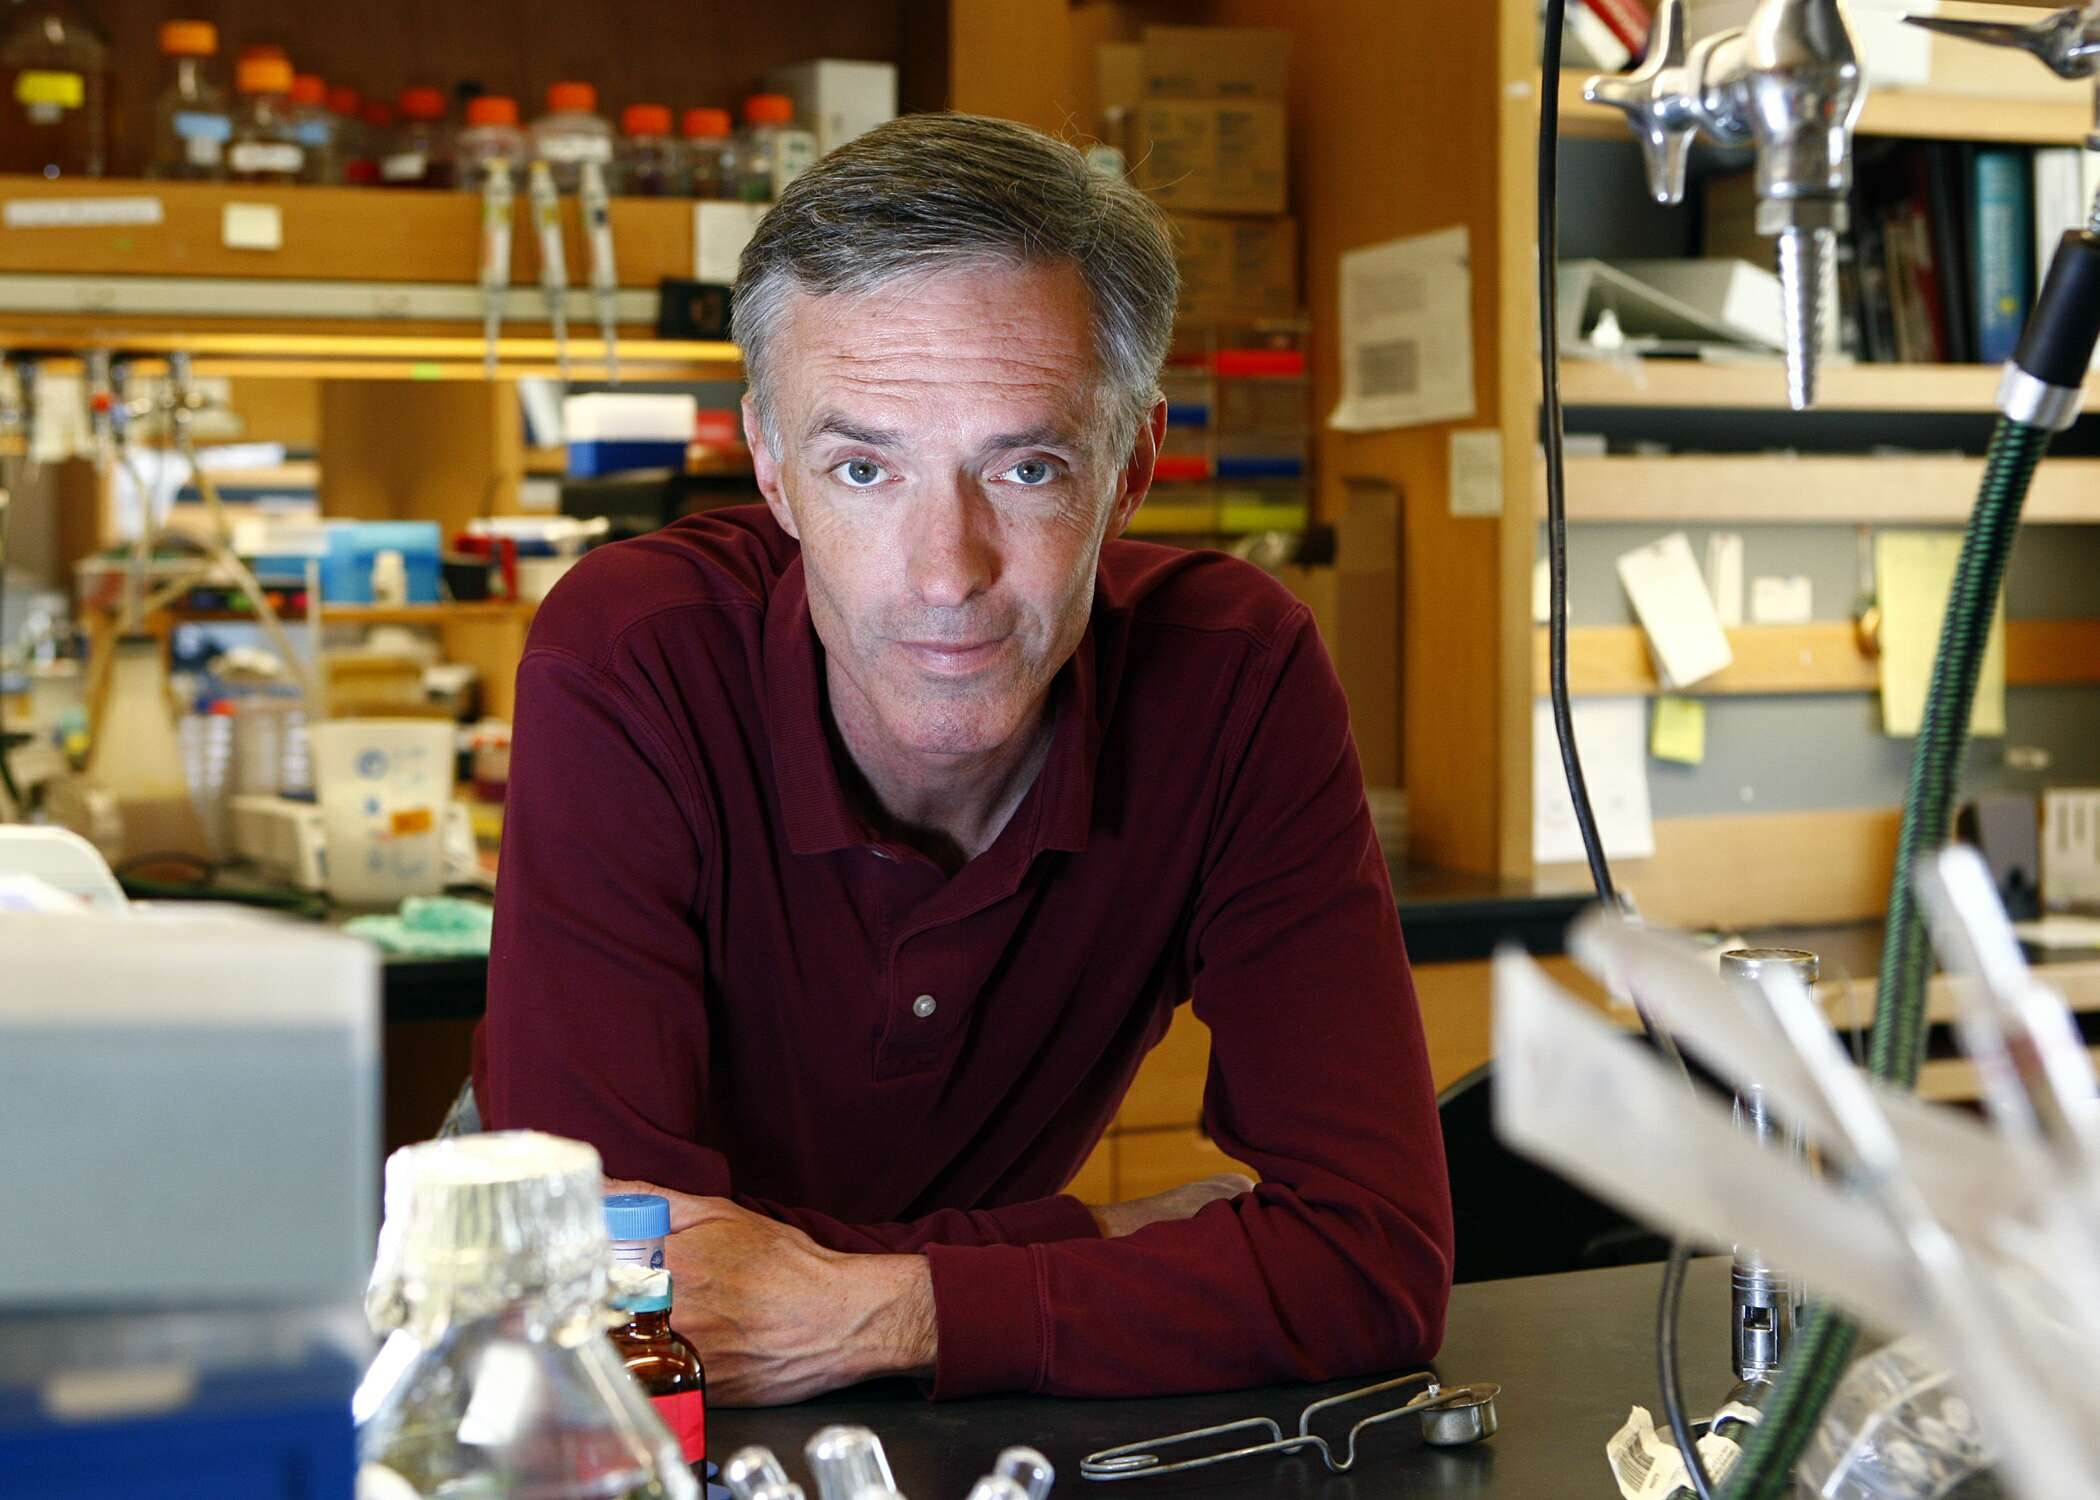 Jim Collins  Bioengineering. Jim pioneered a new field of synthetic biology by combining science and engineering to construct biological circuits that can program organisms like we program computers.